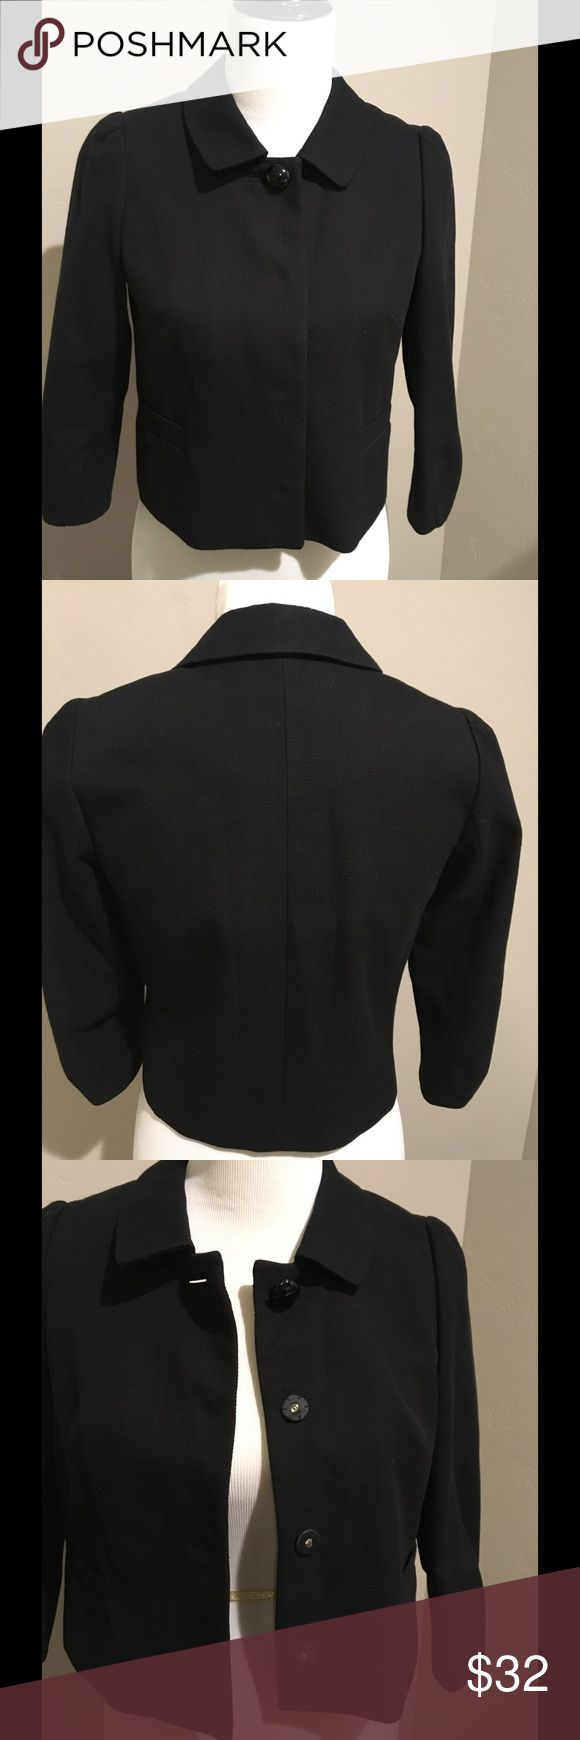 Banana Republic black jacket Black snap up jacket.  Woven fabric. Great for dress or fun with jeans 2P Banana Republic Jackets & Coats Blazers